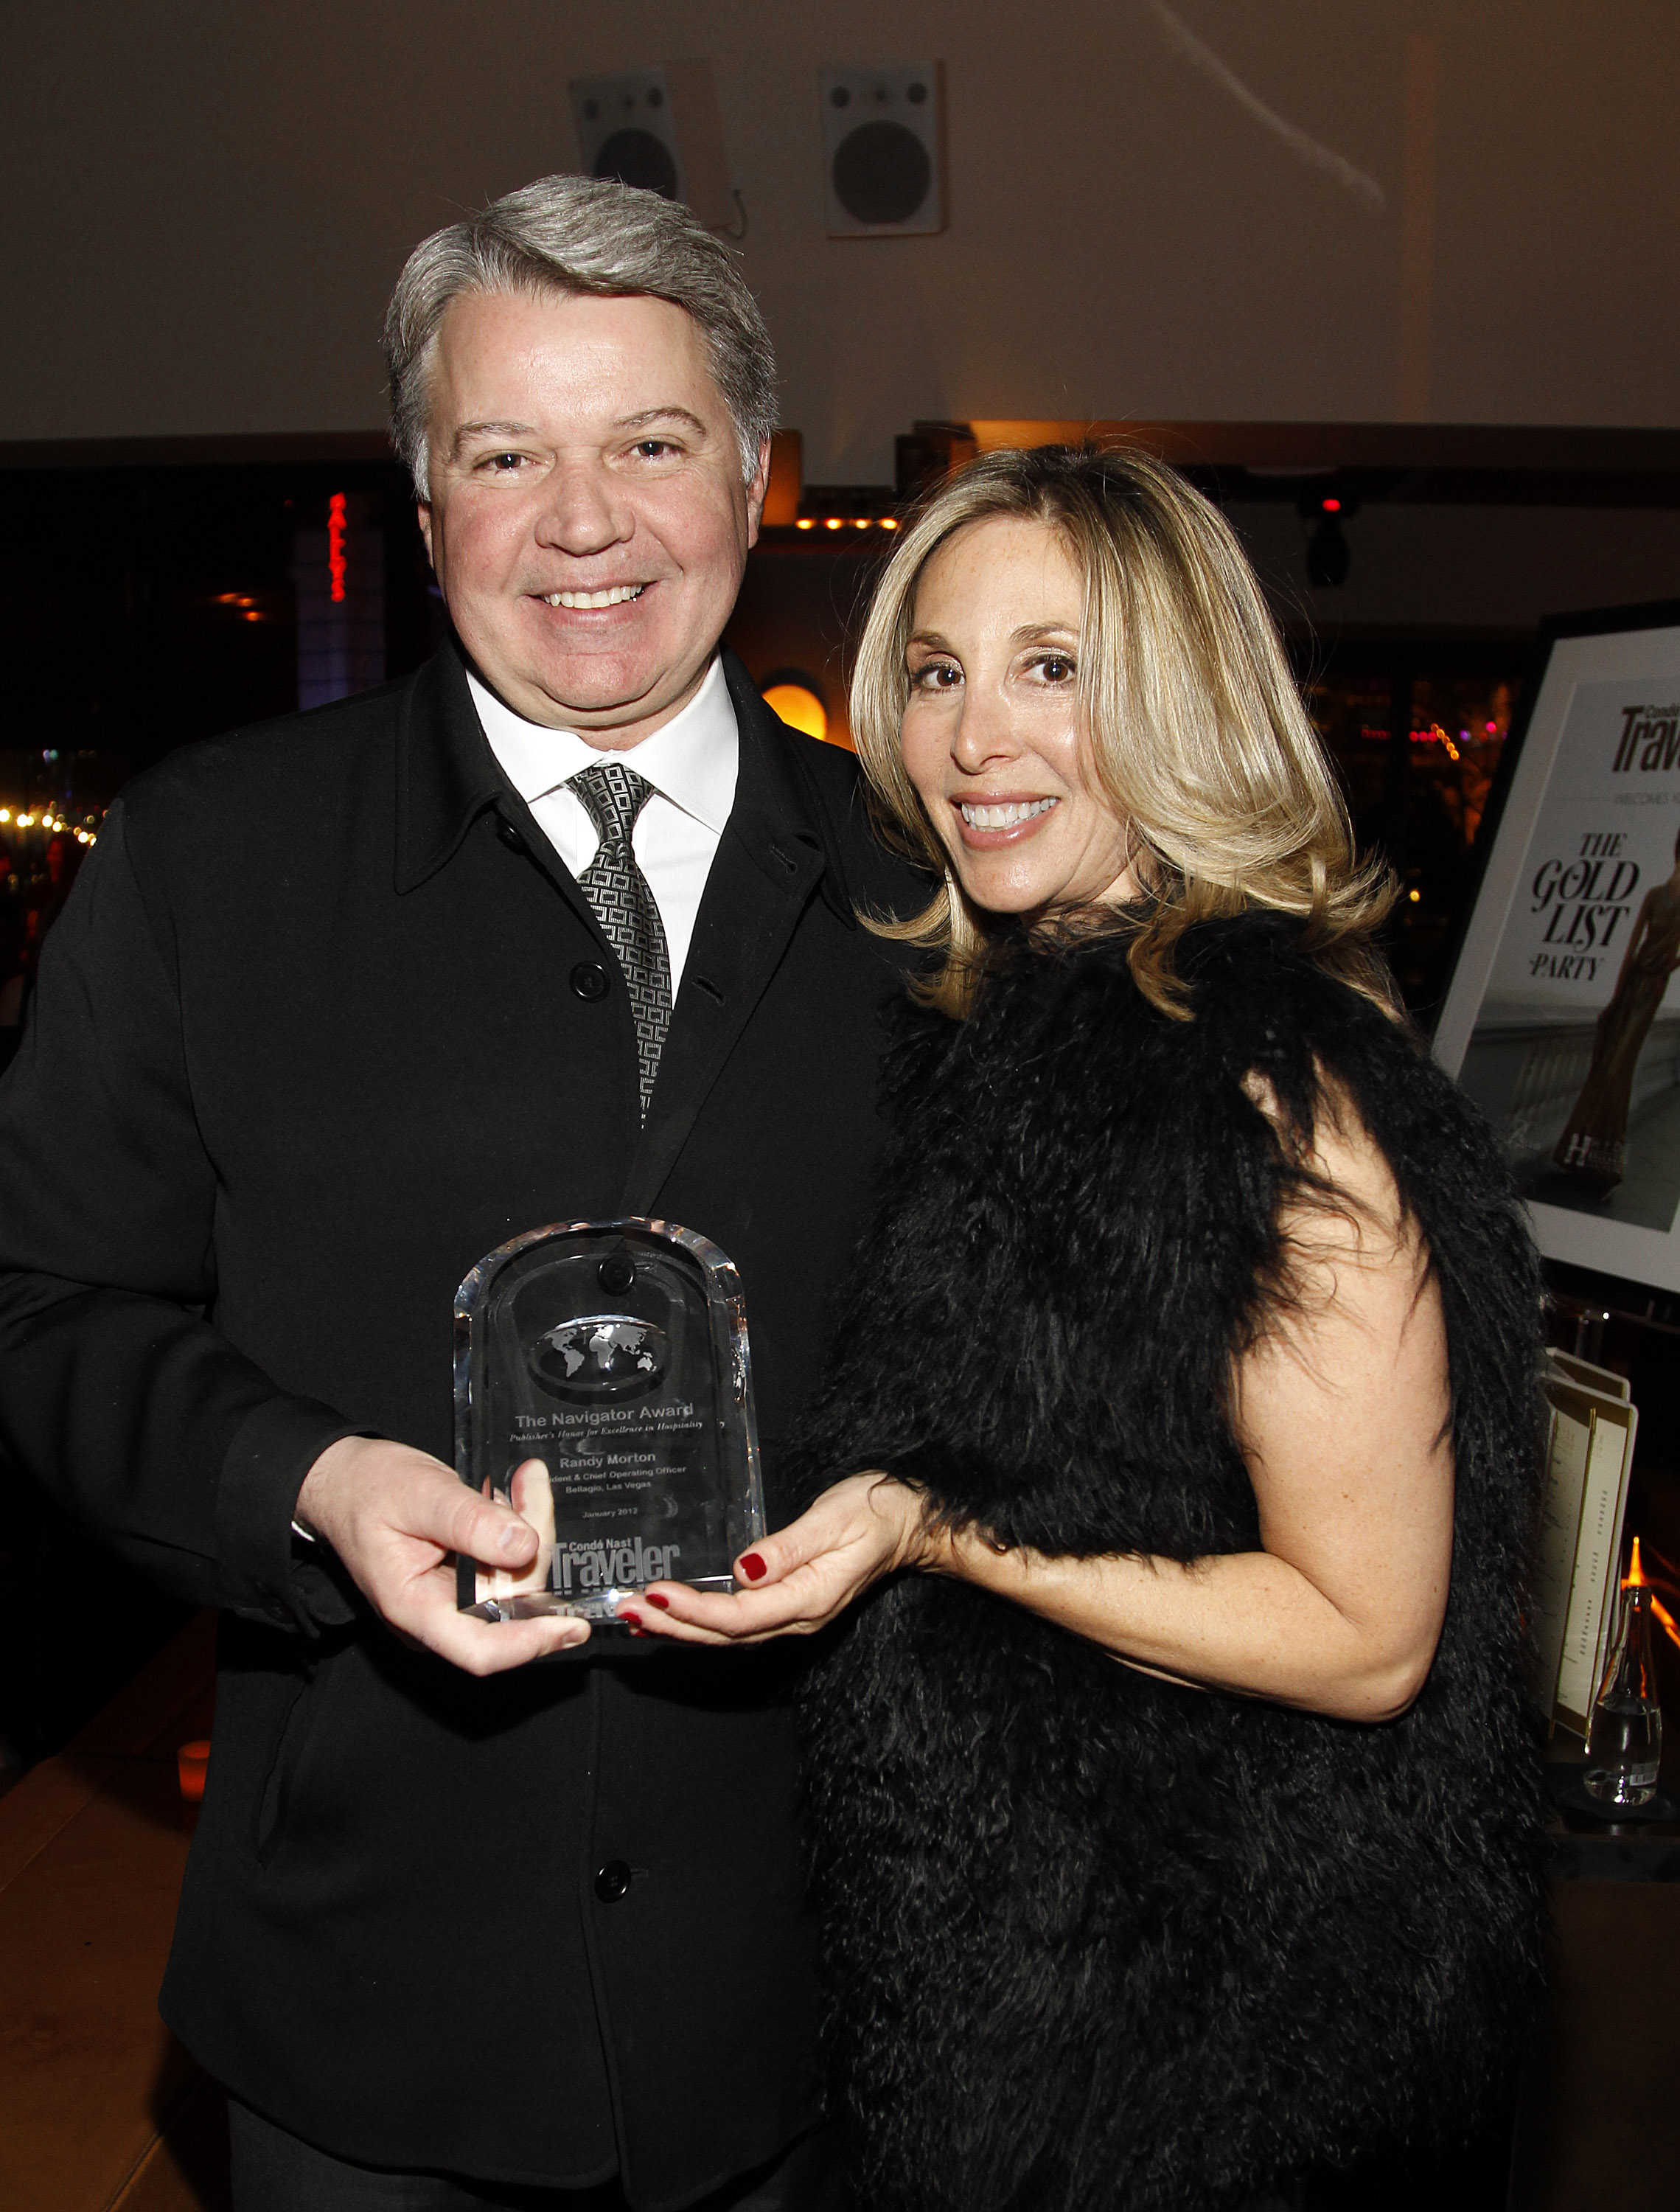 Bellagio President & COO Randy Morton accepts Navigator Award from Conde Nast Traveler Publisher Carolyn Kremins on January 21, 2012.